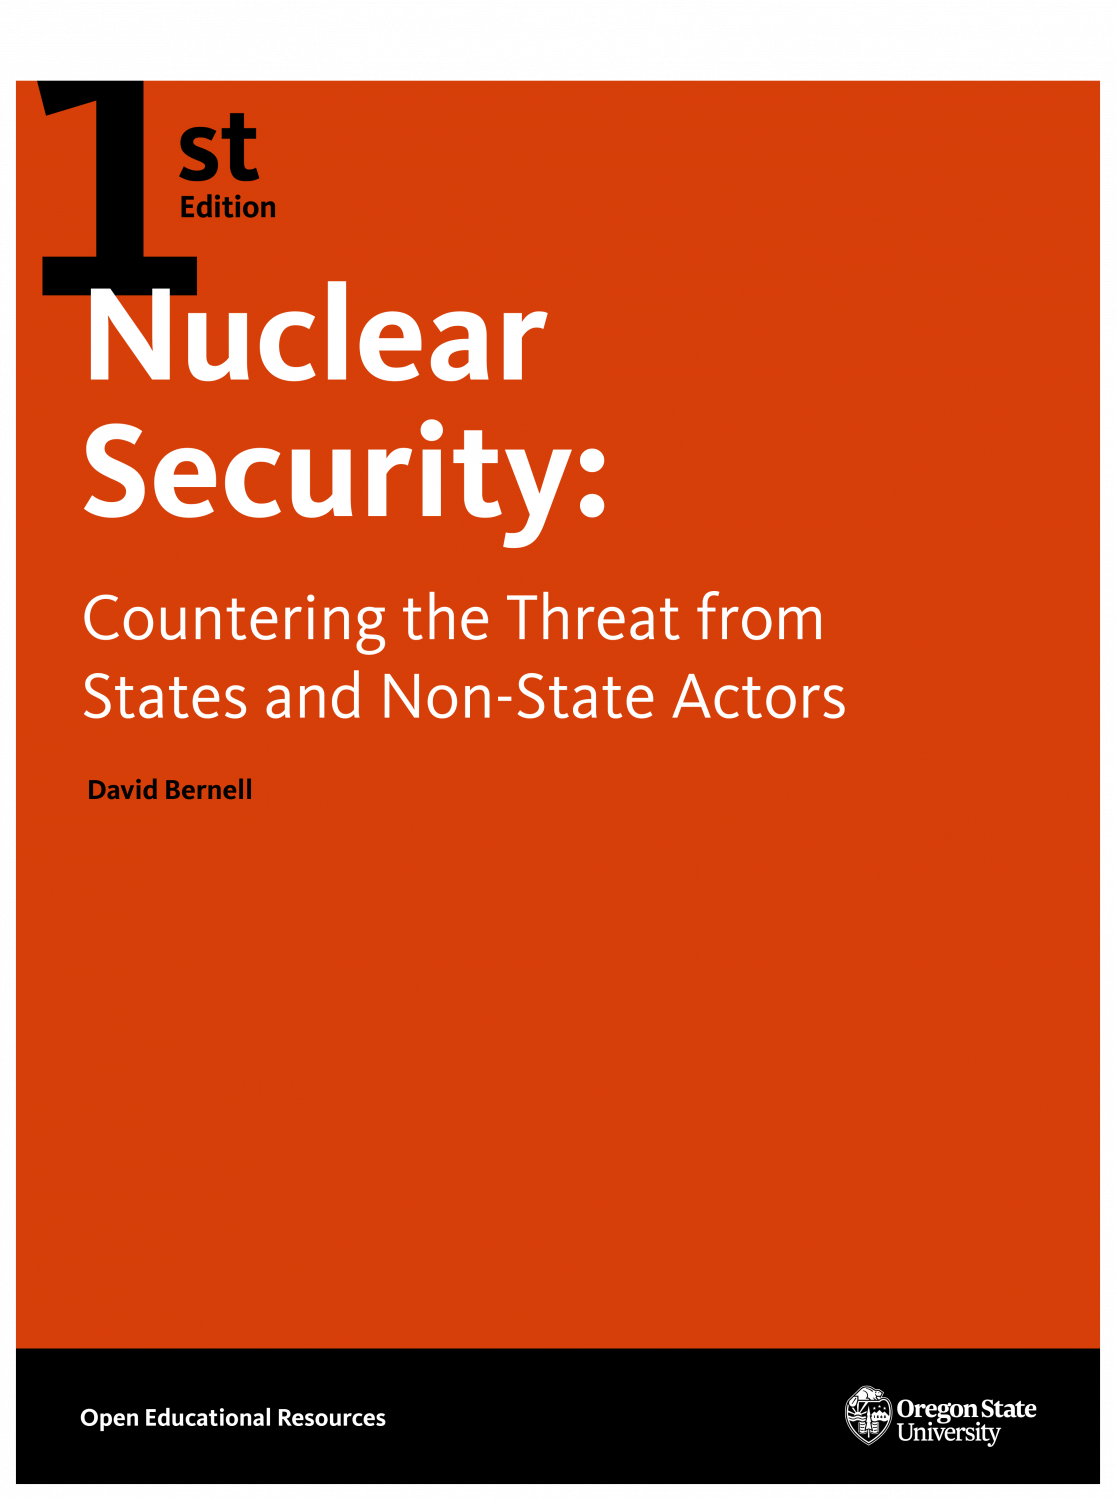 Cover image for Nuclear Security: Countering the Threat From States and Non-State Actors